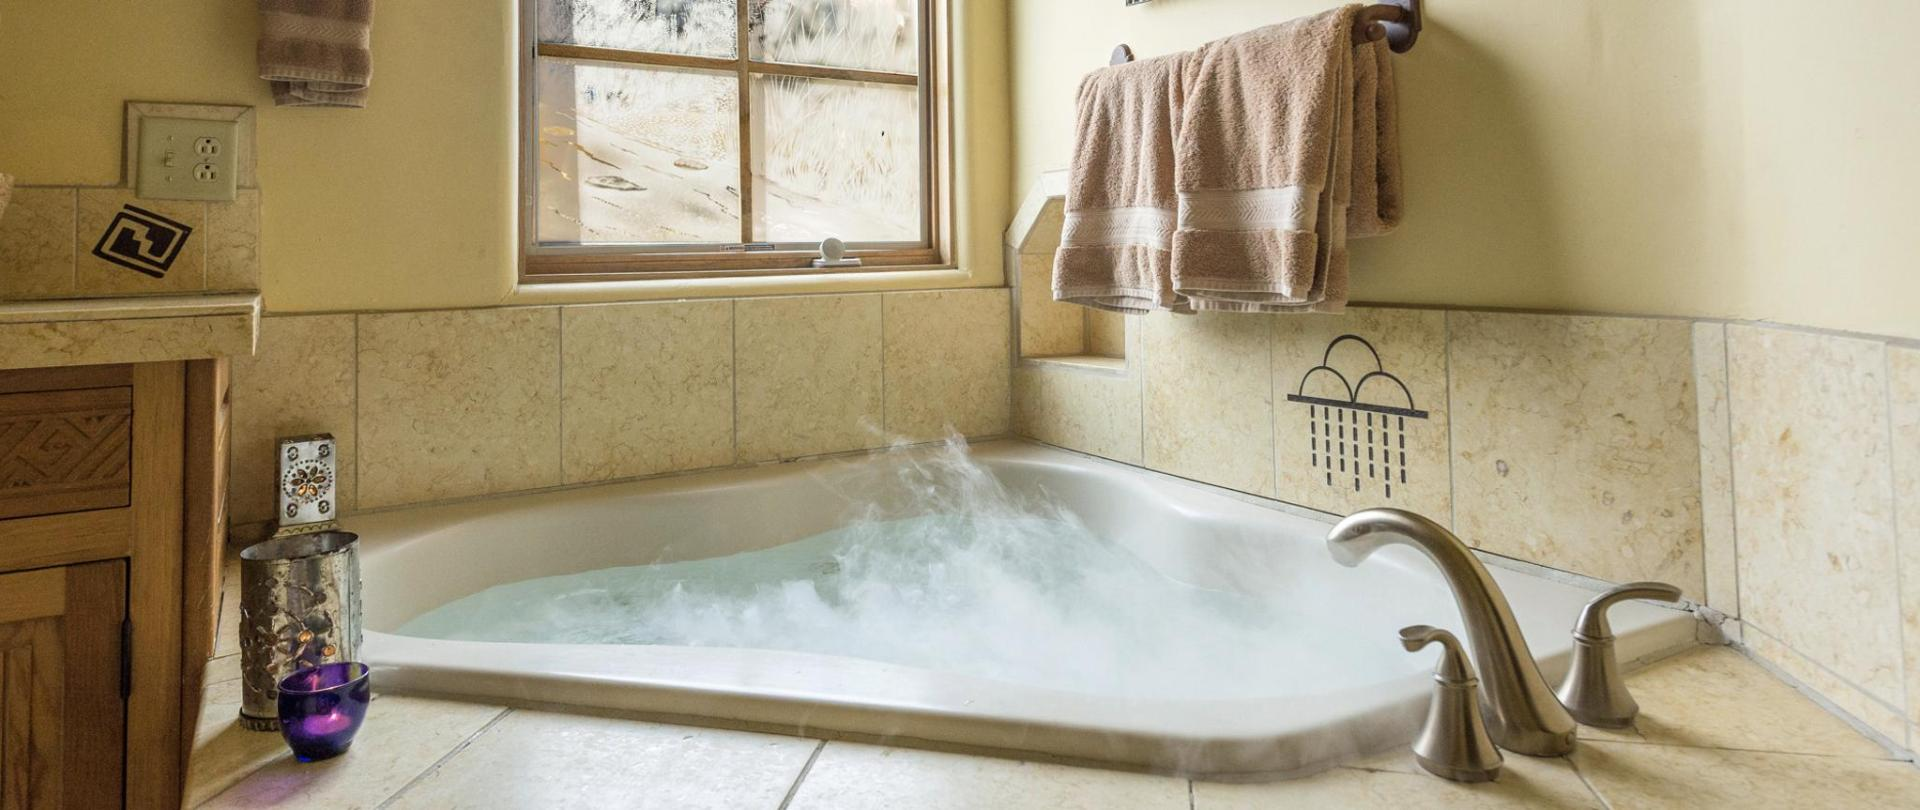 Deluxe two-person jetted tub in the Anasazi Penthouse Suite